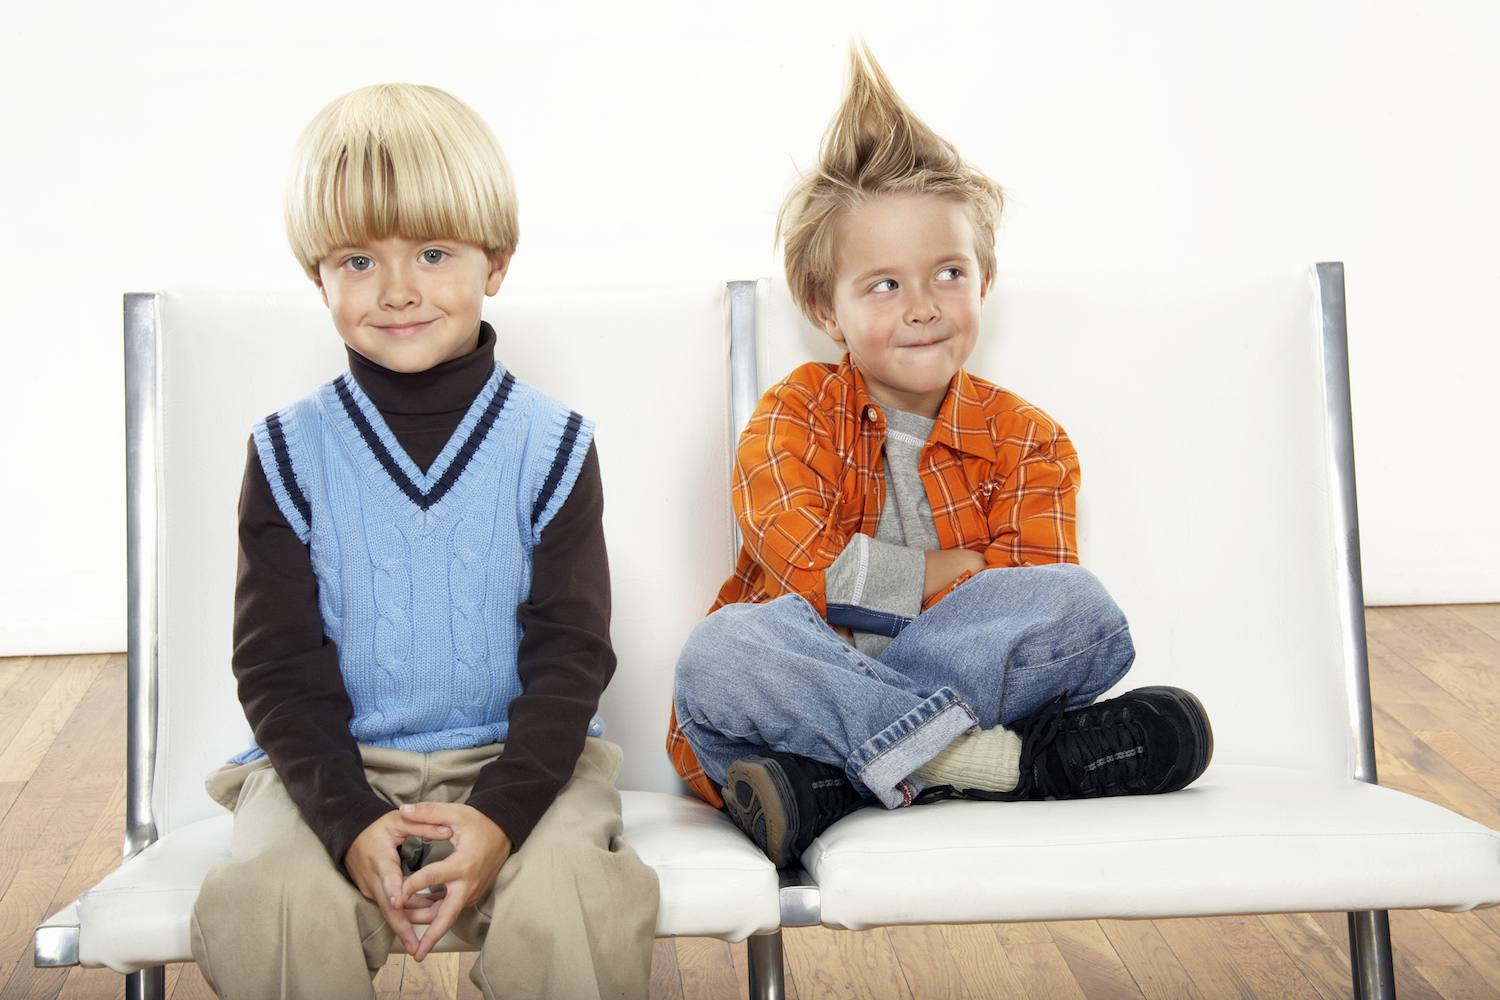 Twins sitting on chairs, wearing different styles